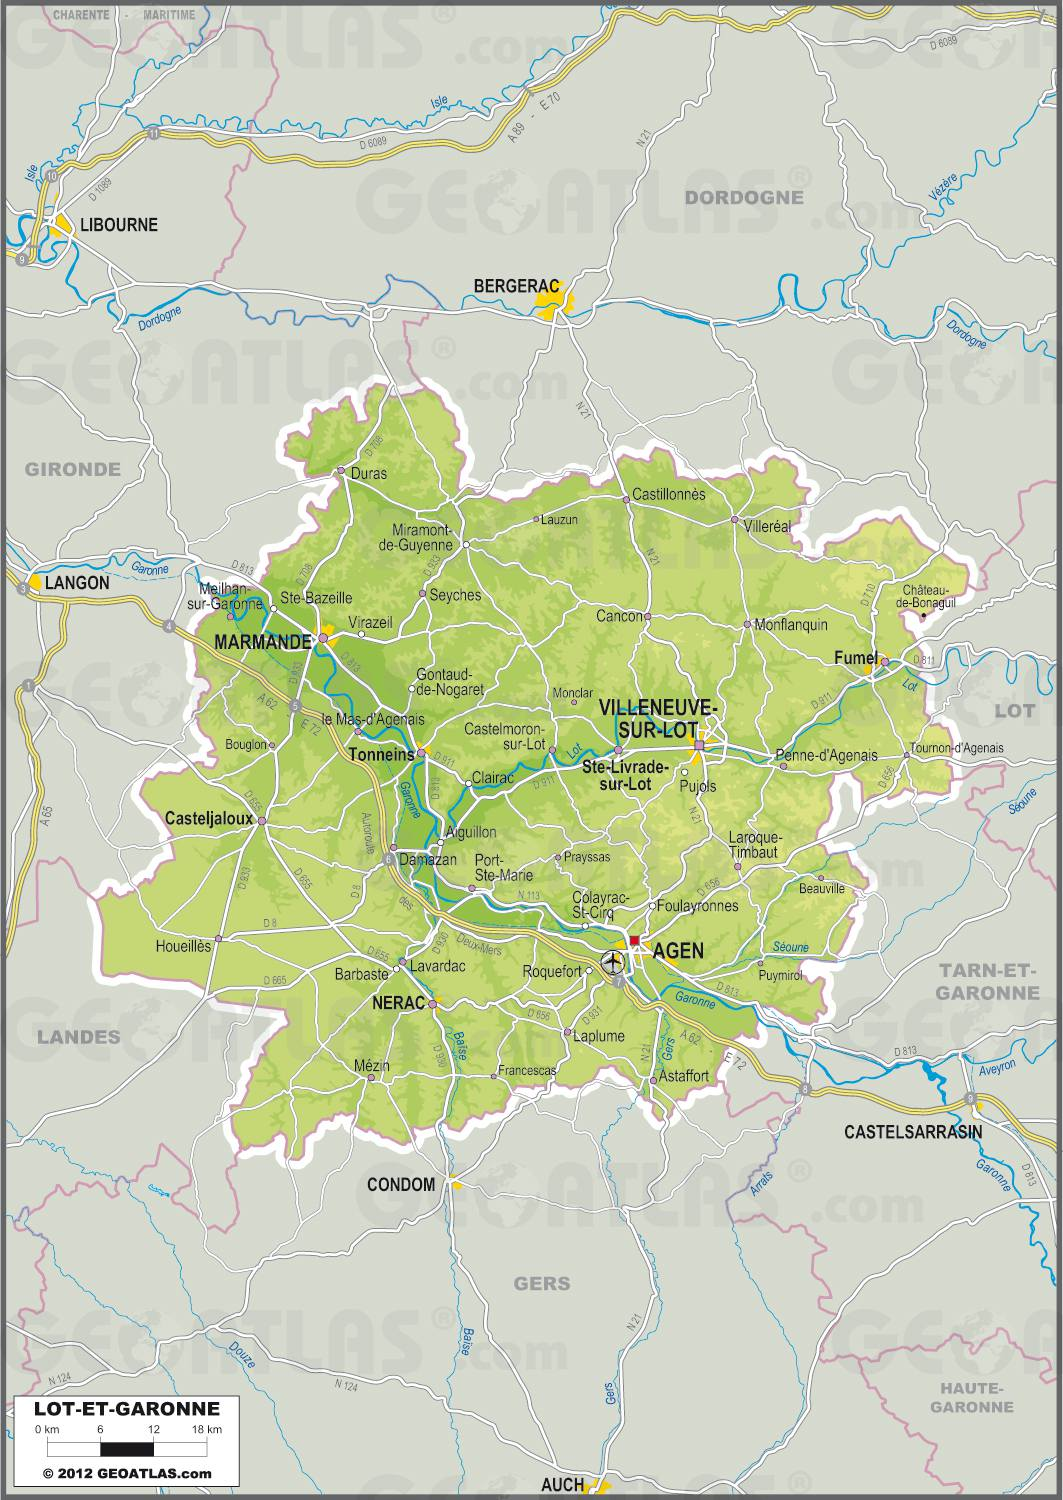 Lot-et-Garonne carte